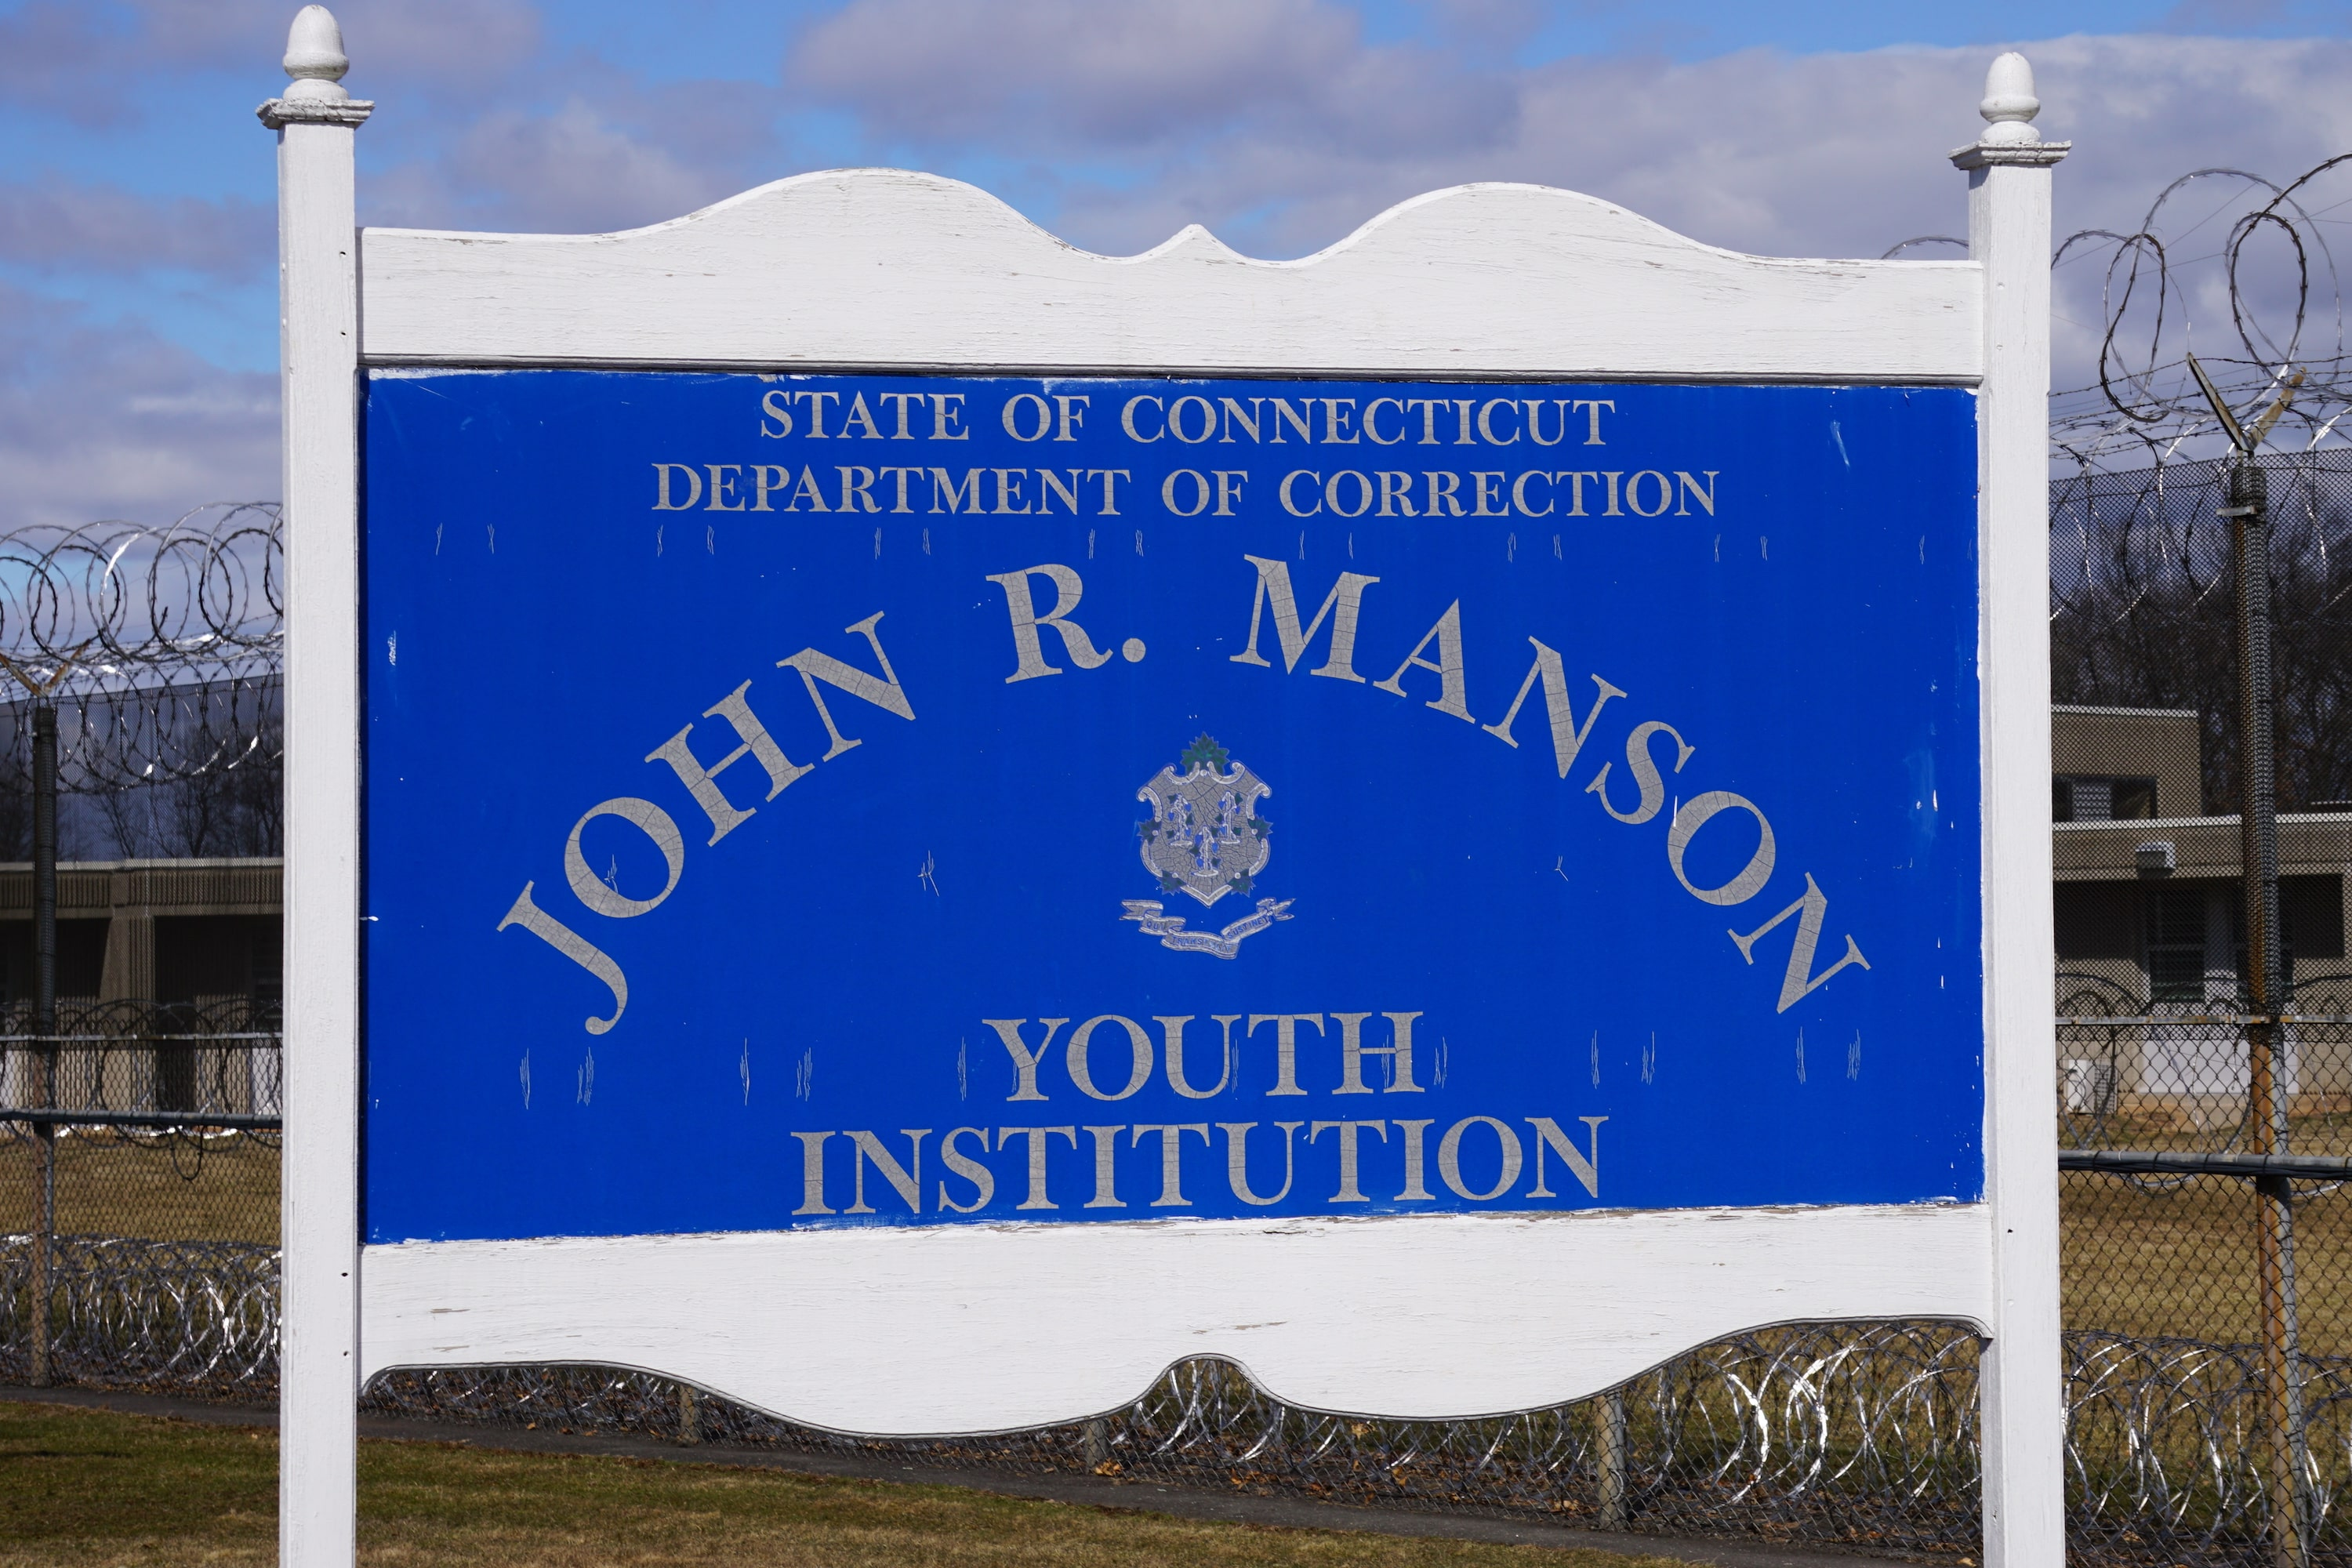 To protect its residents, Manson Youth Institution adapts for COVID-19